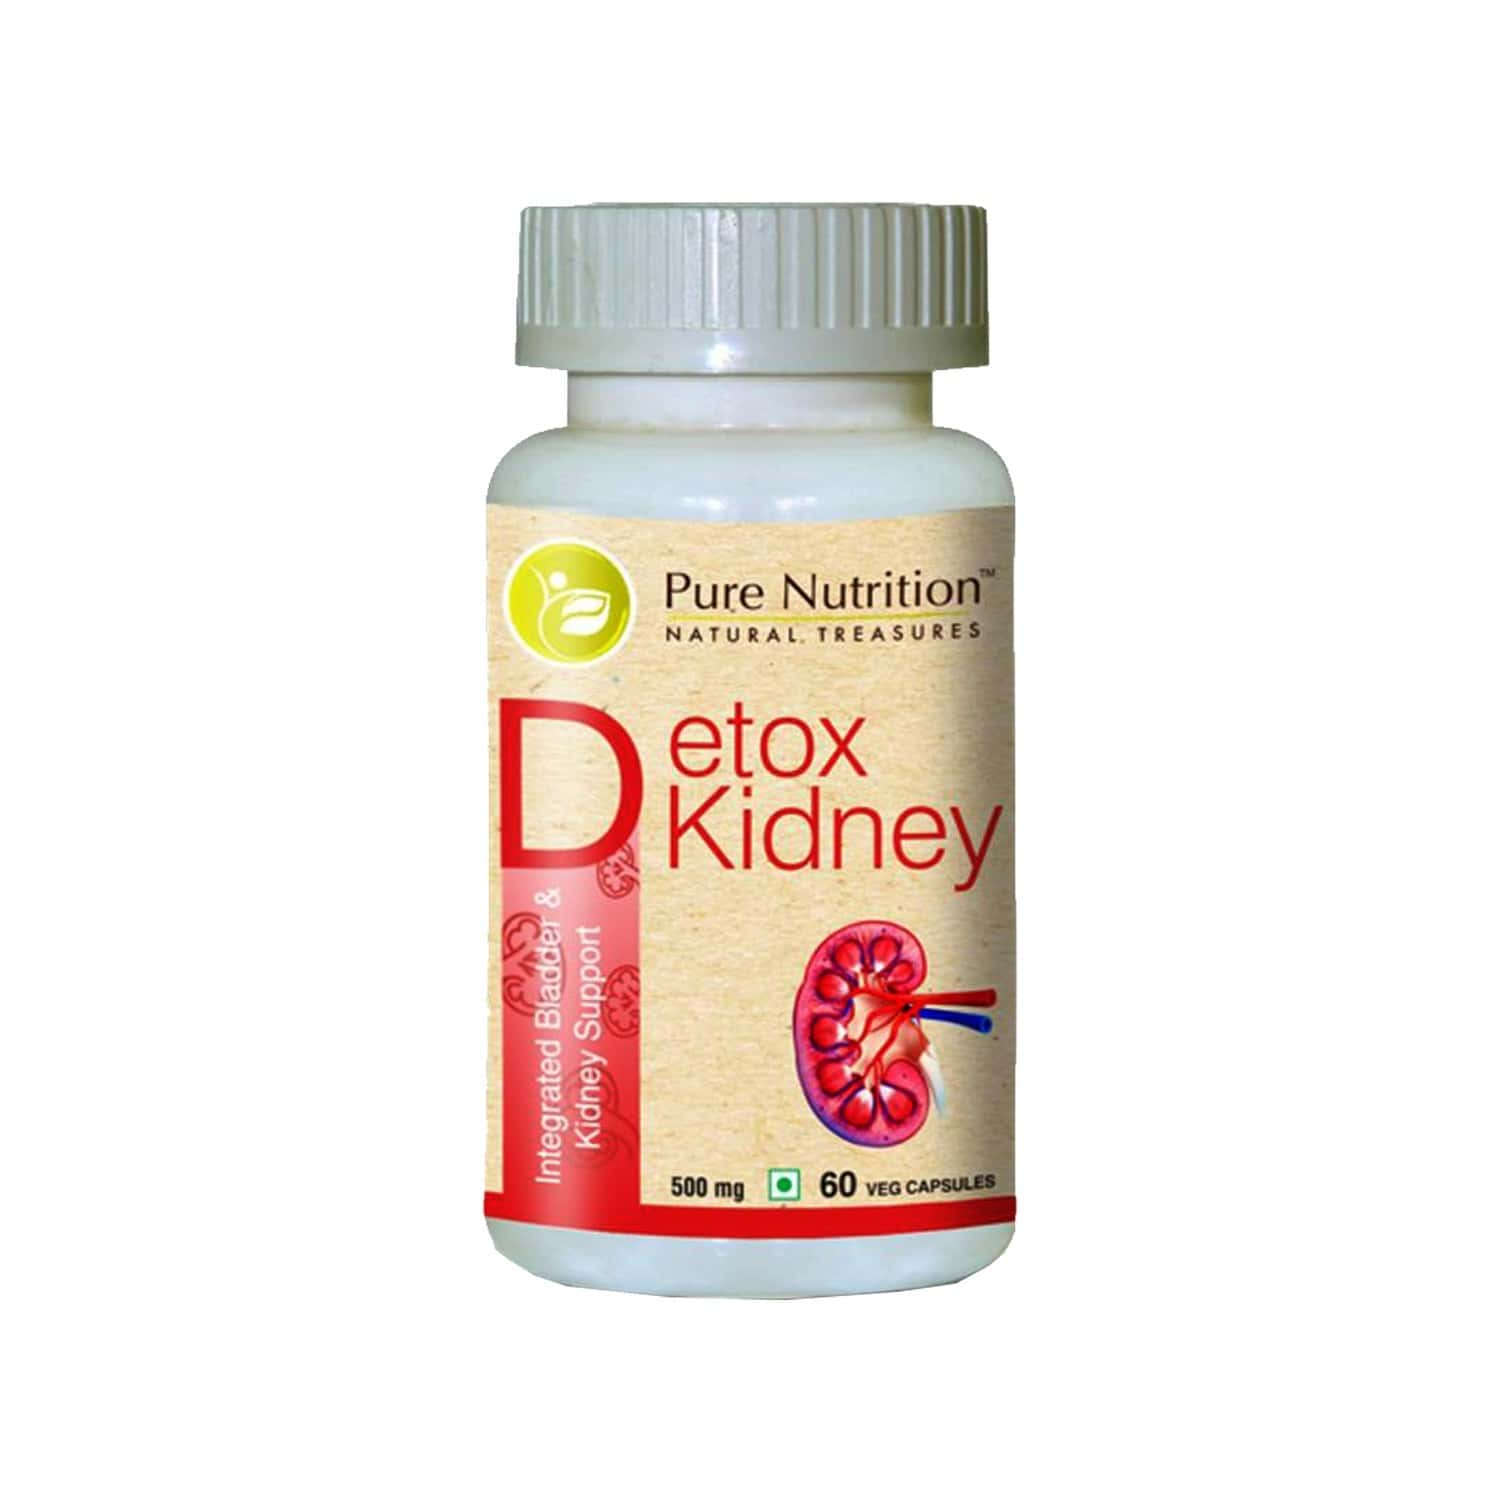 Pure Nutrition Detox Kidney (integrated Bladder And Kidney Support) - 60 Caps